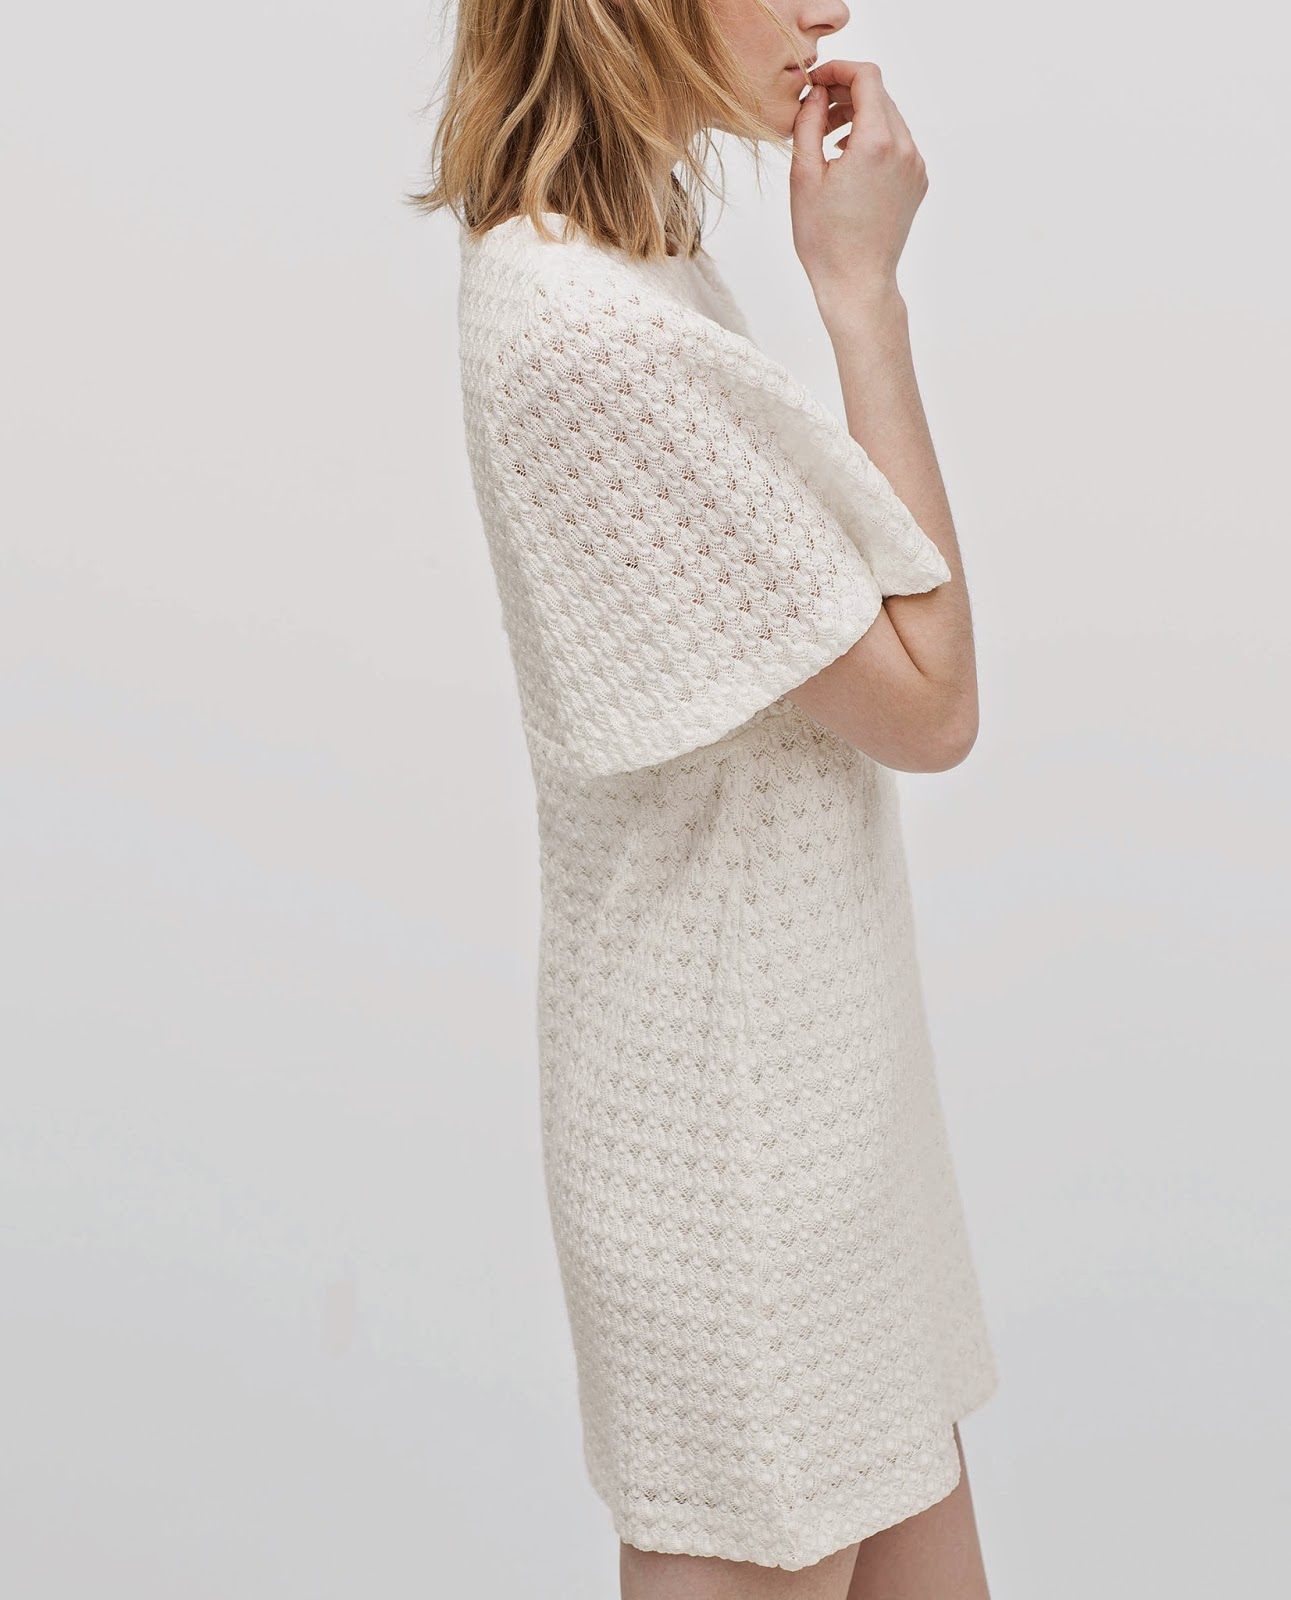 zara white crochet dress